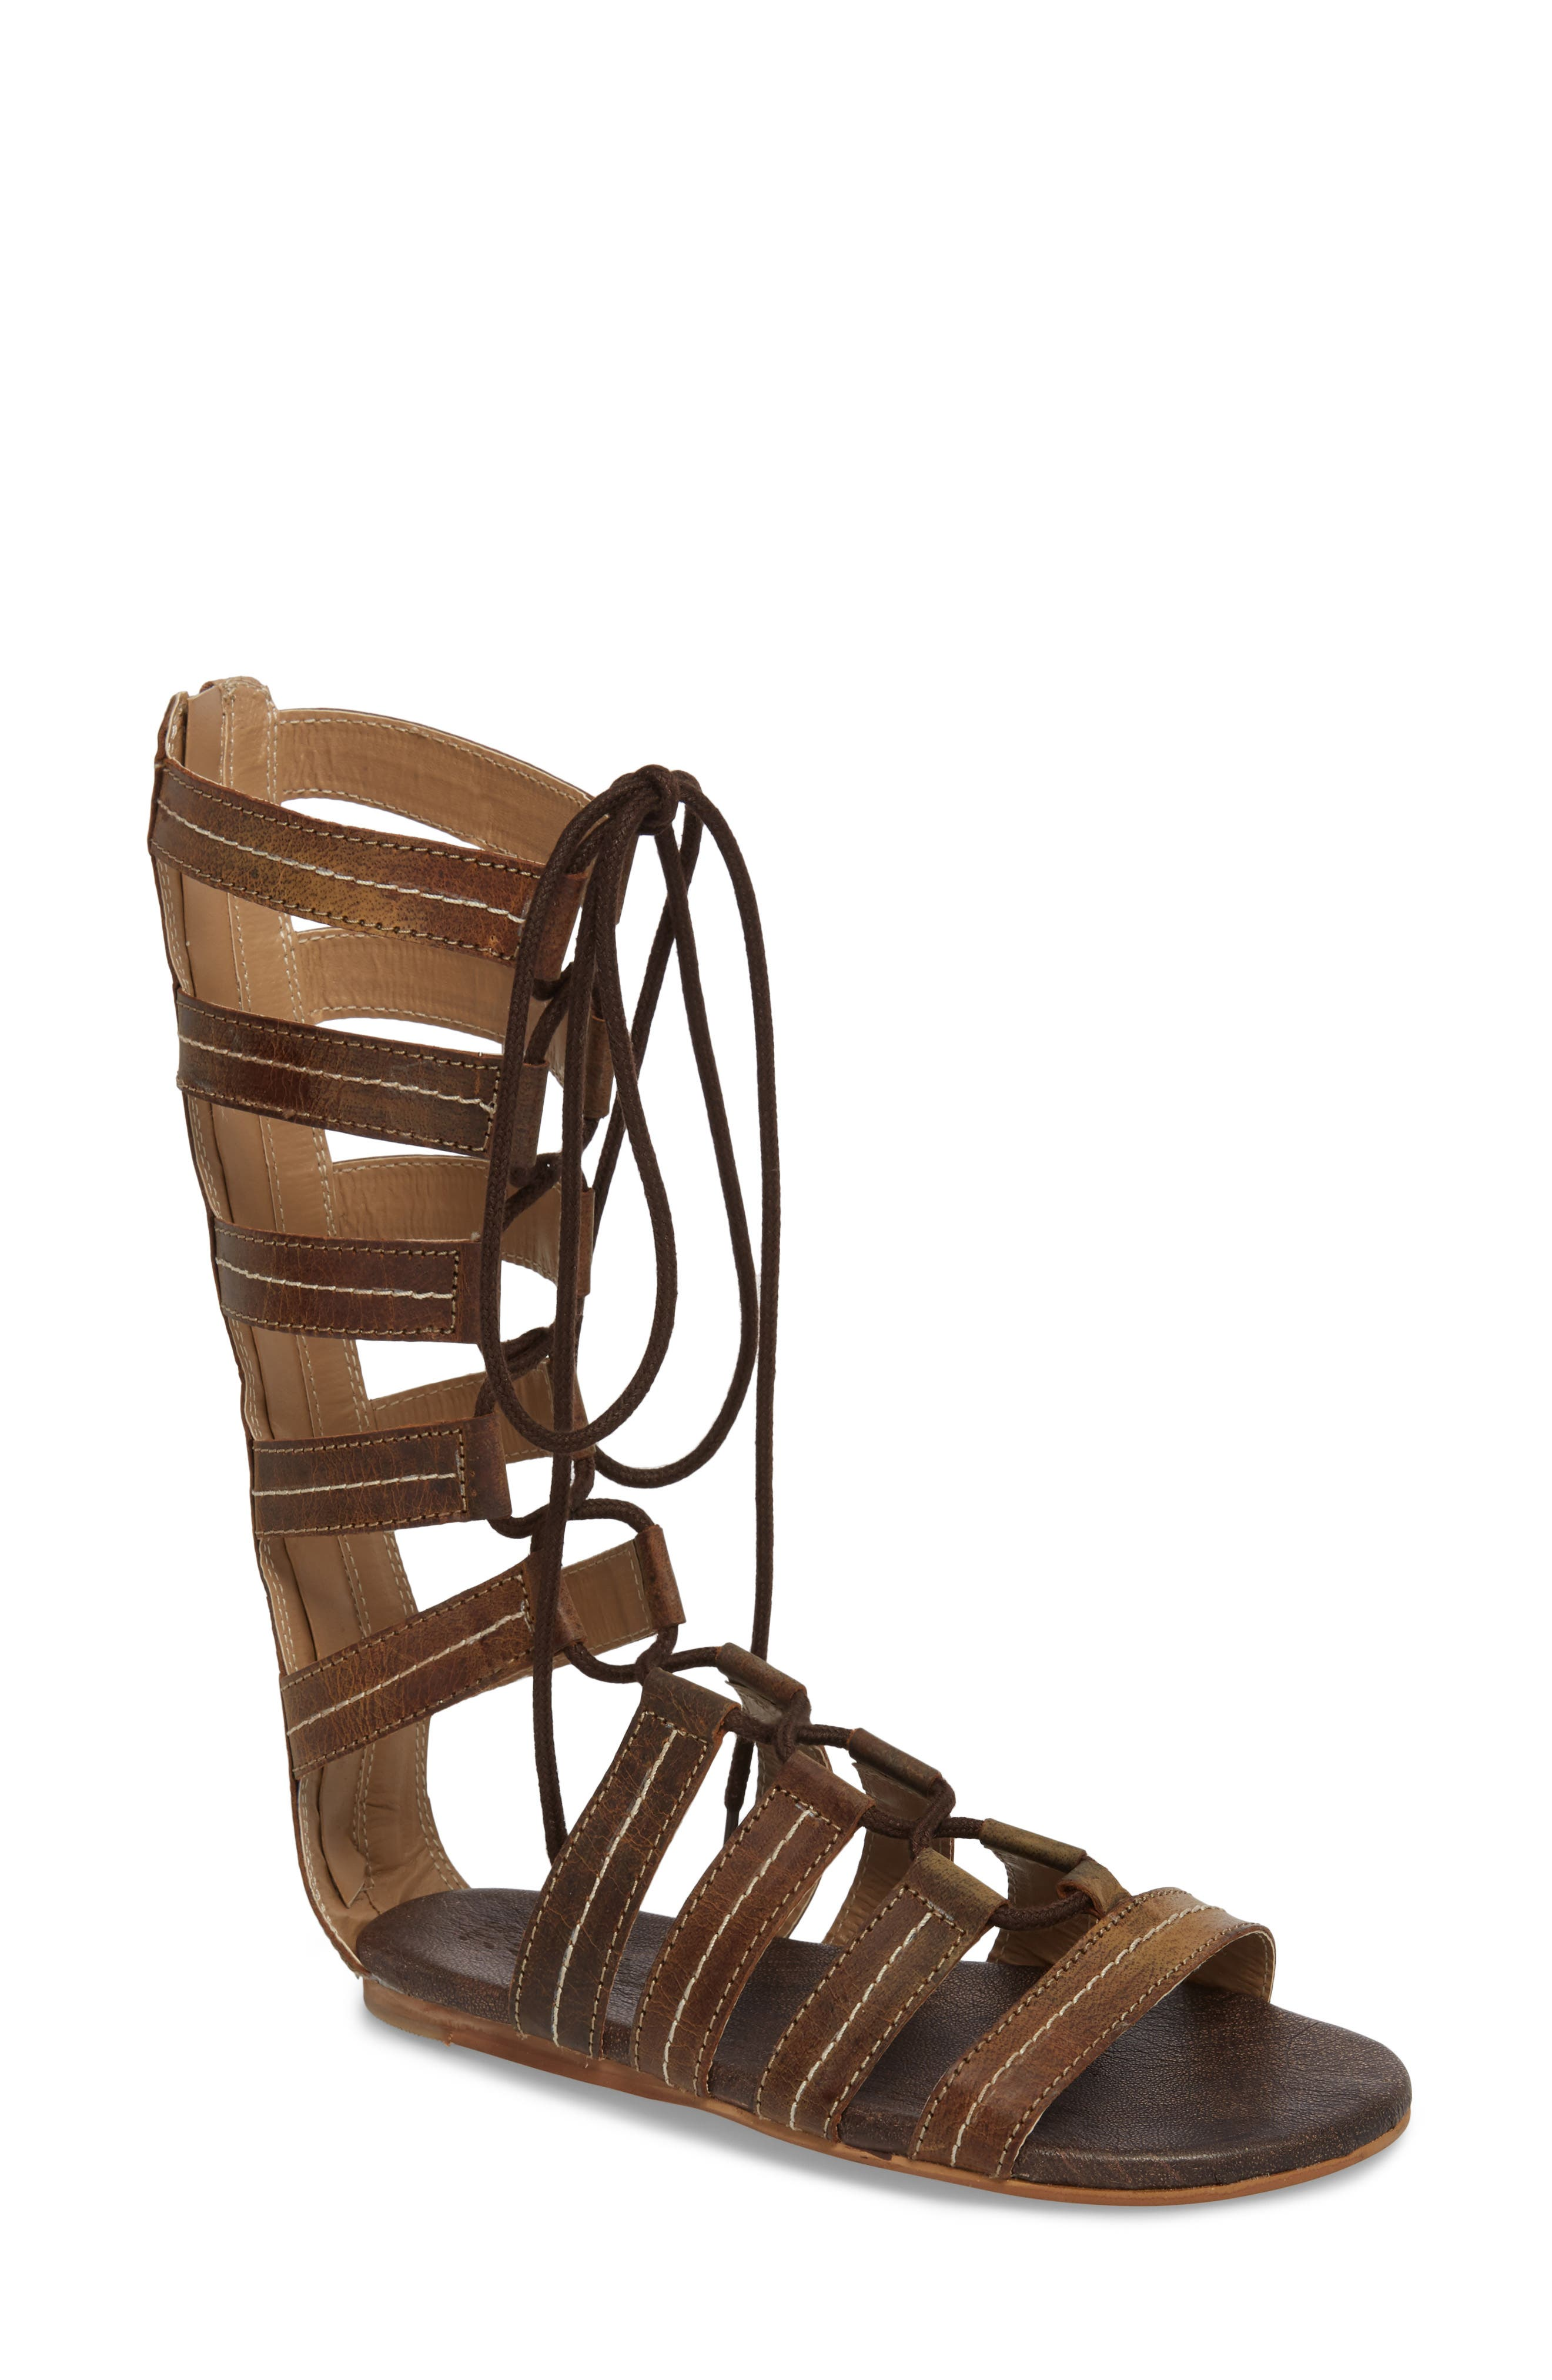 Rhea Lace-Up Gladiator Sandal,                         Main,                         color, Tan Greenland